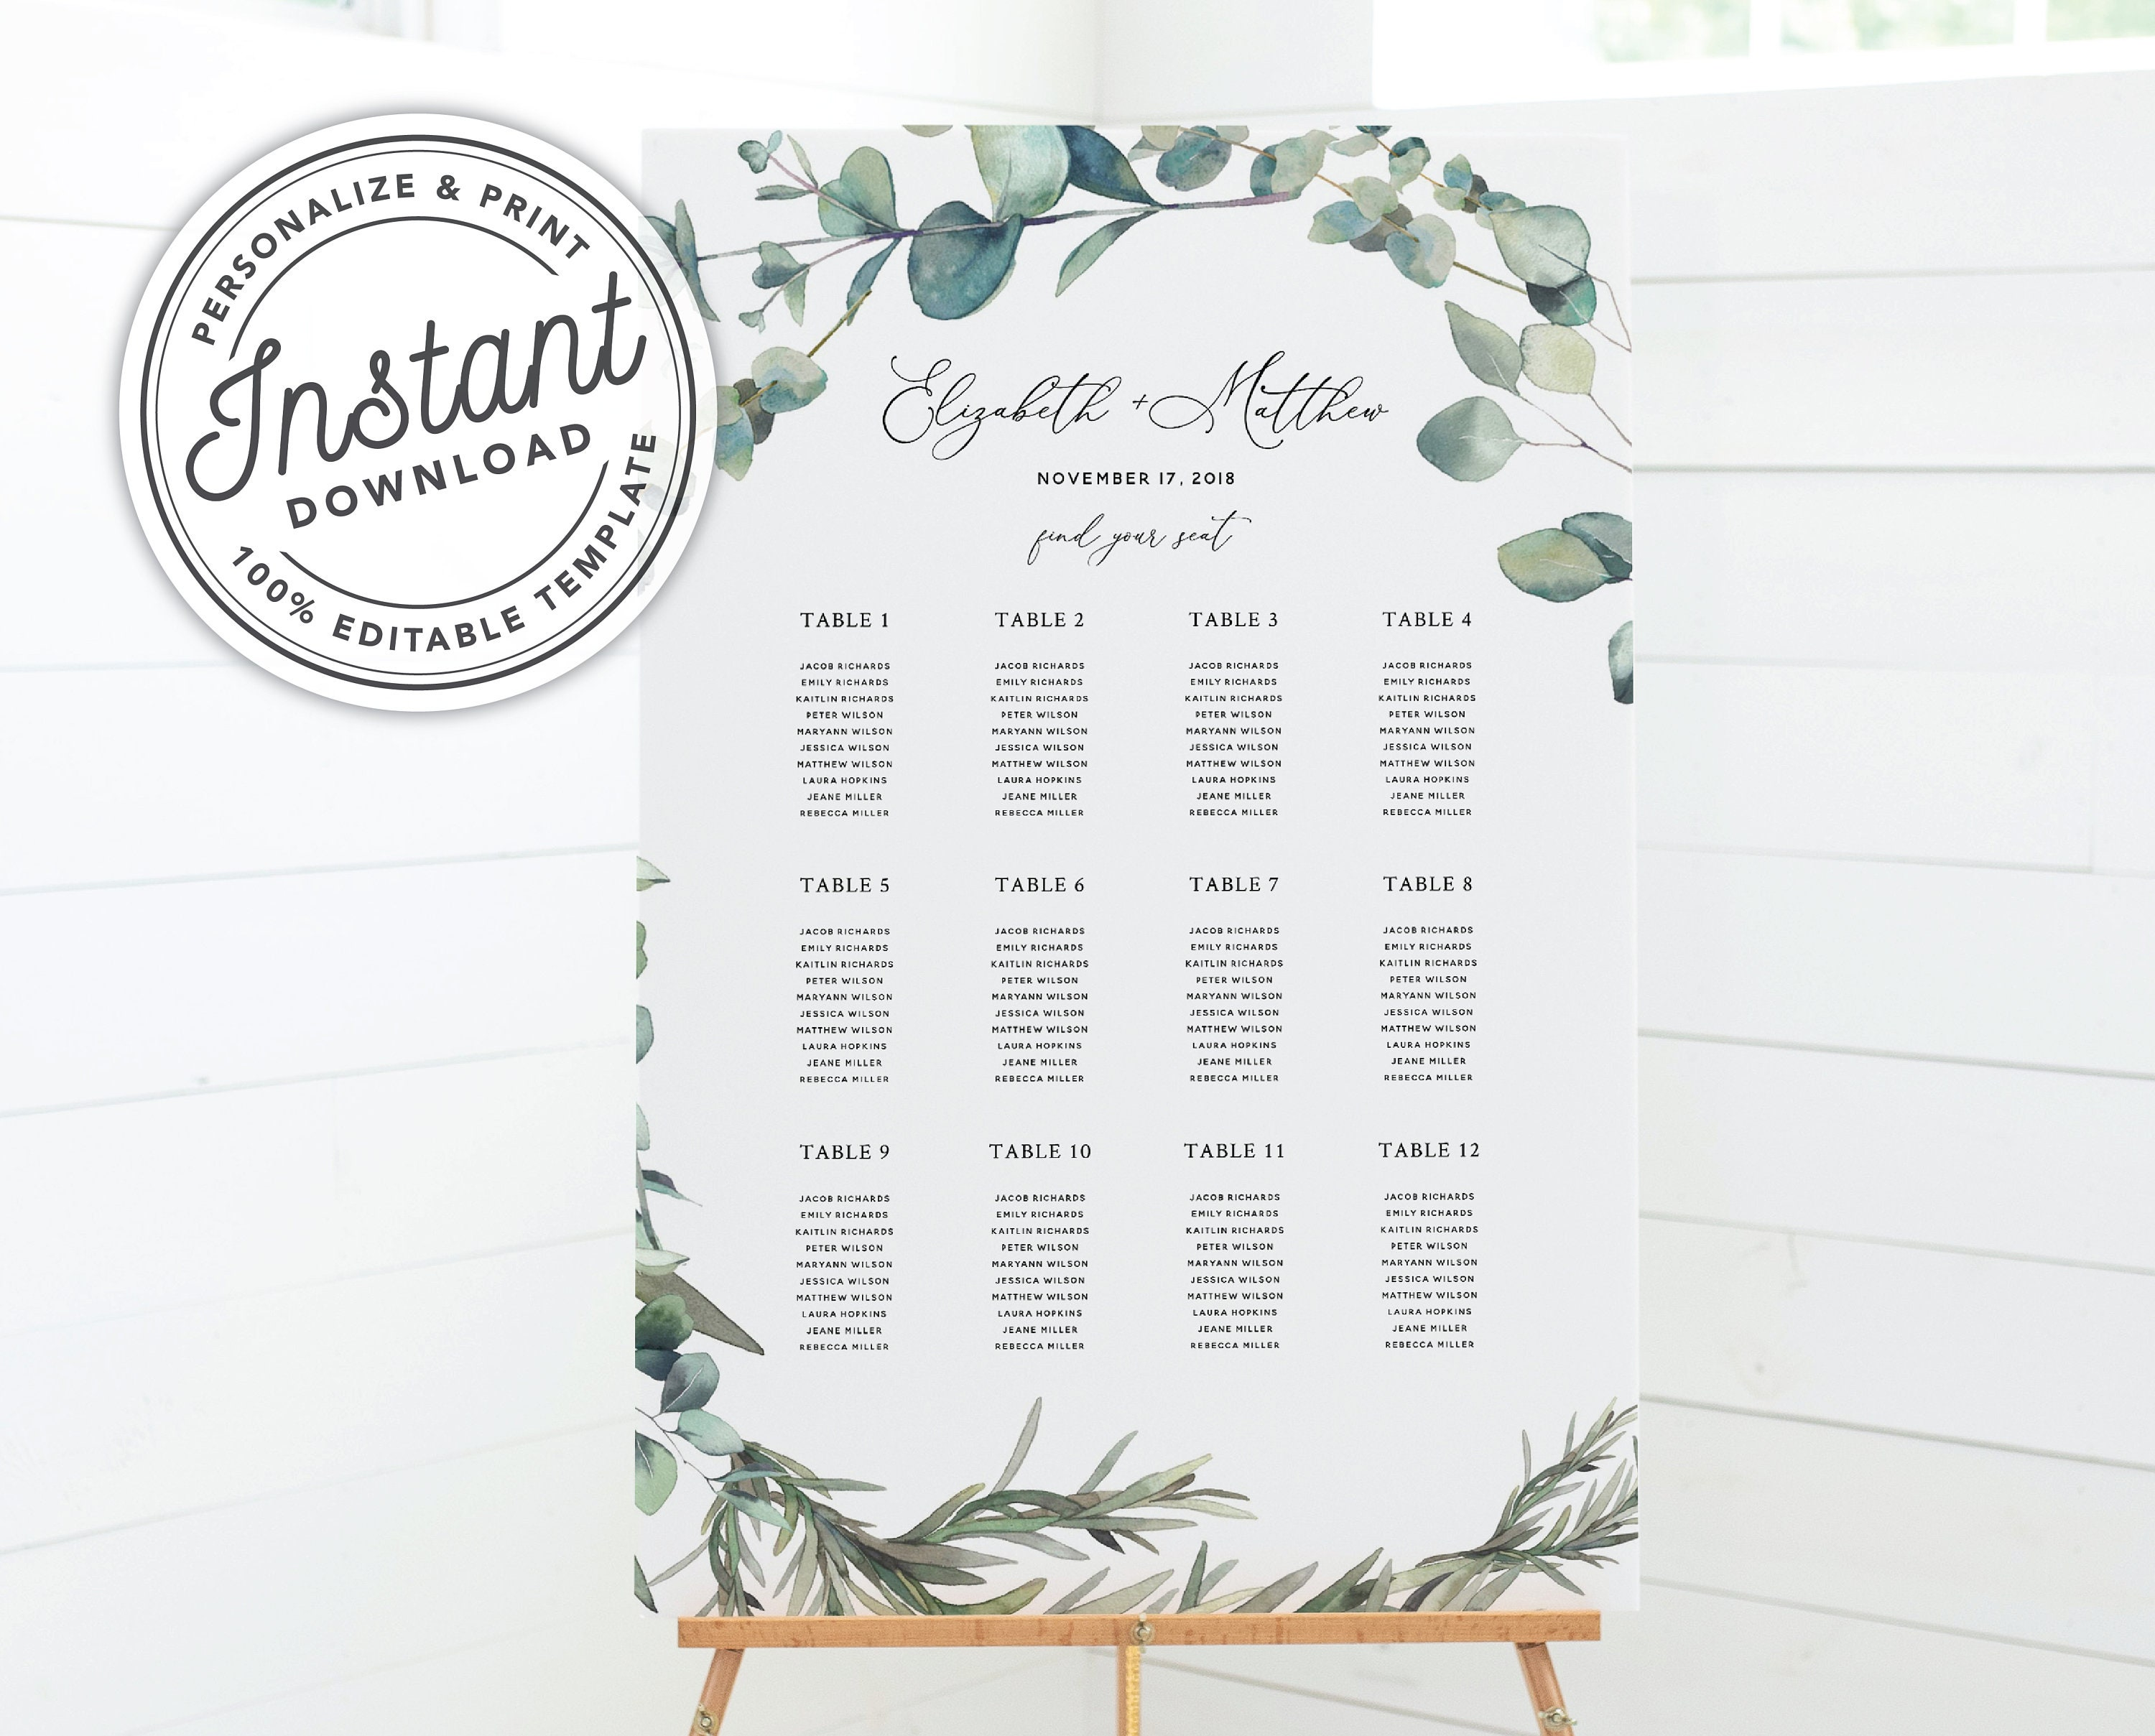 Boho Wreath Printable Wedding Seating Chart With Eucalyptus Greenery 18x24 24x36 A2 A1 Instant Download Editable Template 023